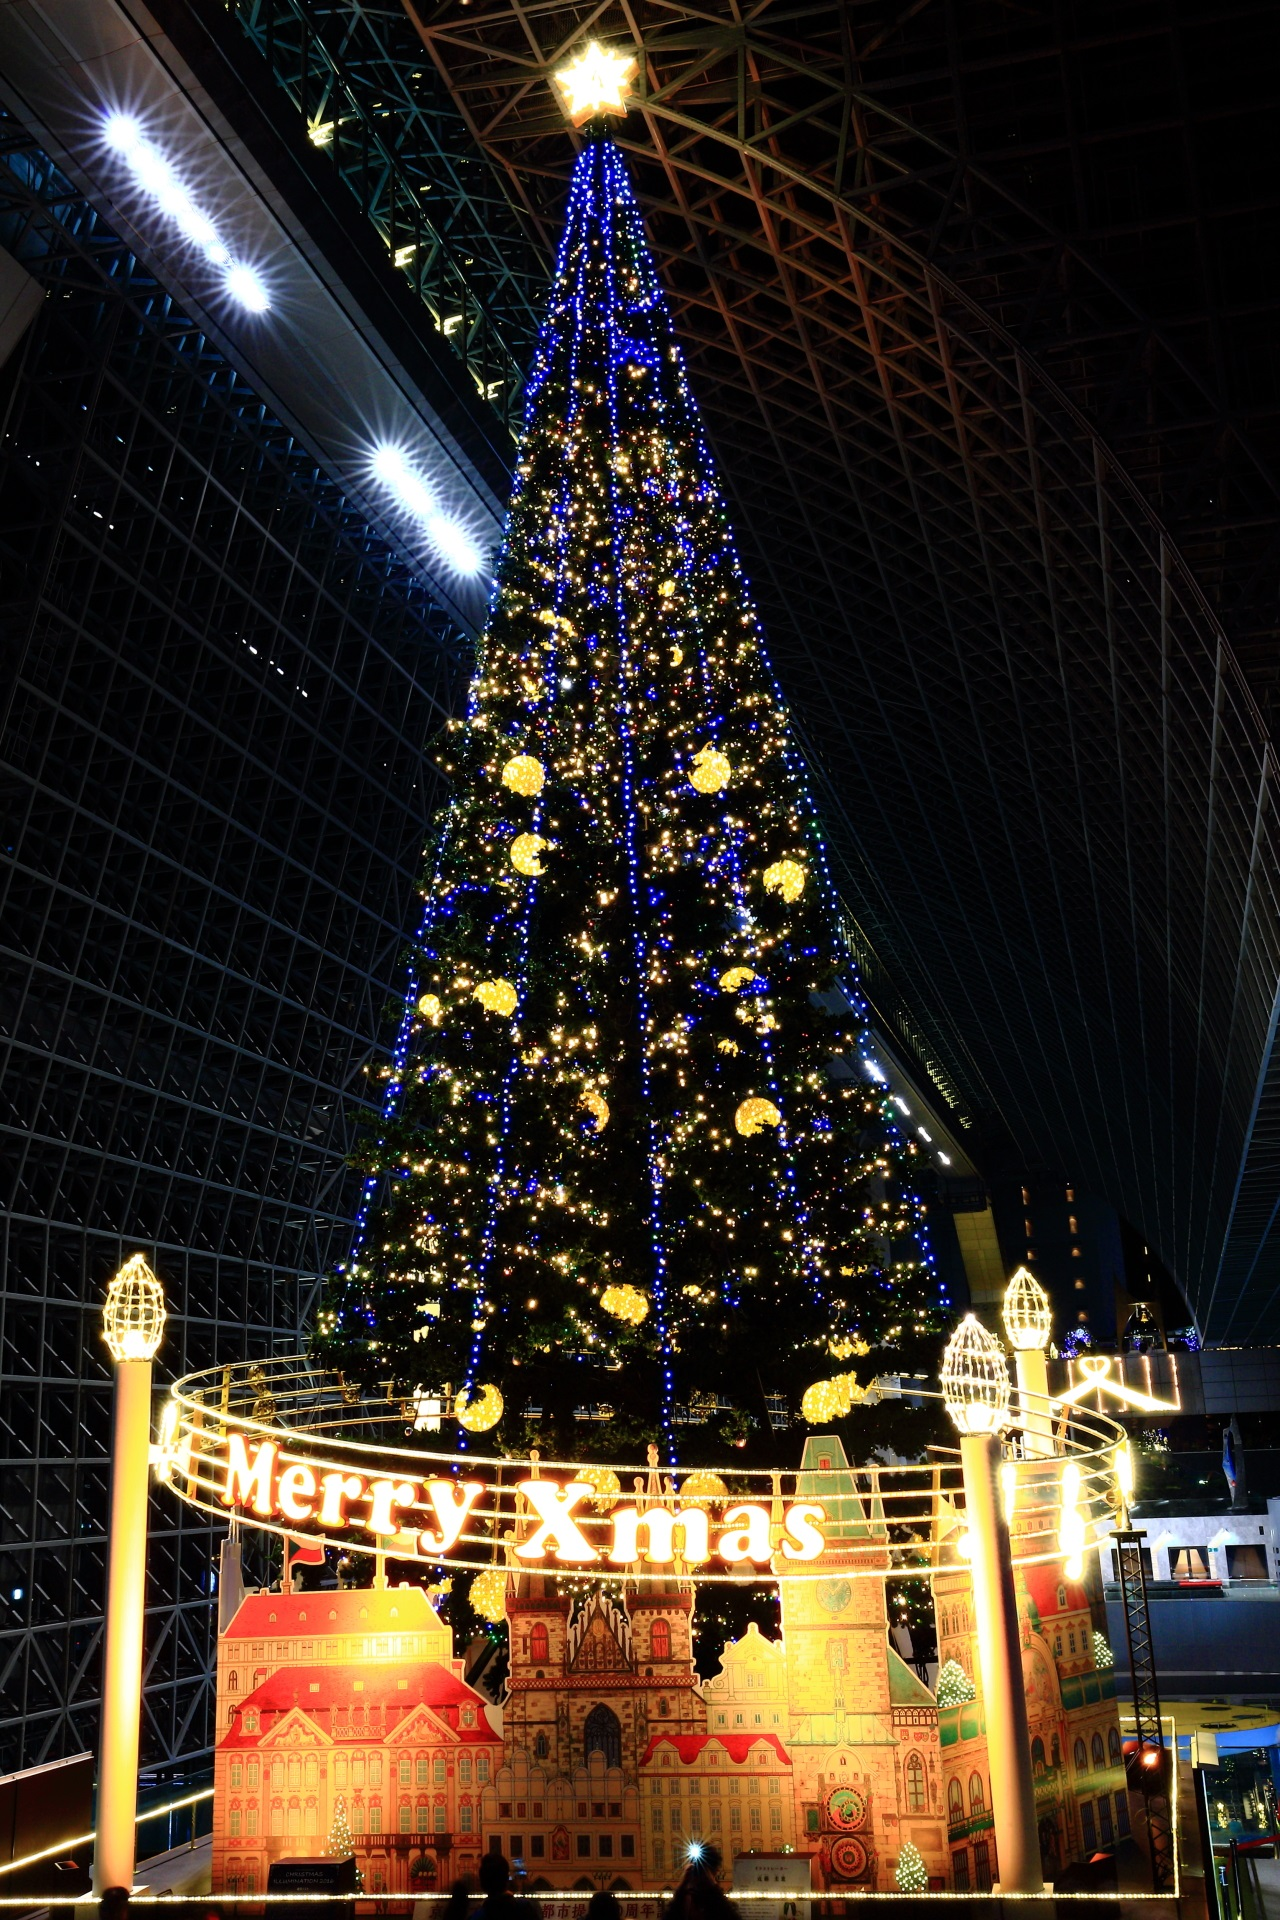 Kyoto Station Building Christmas tree illumination